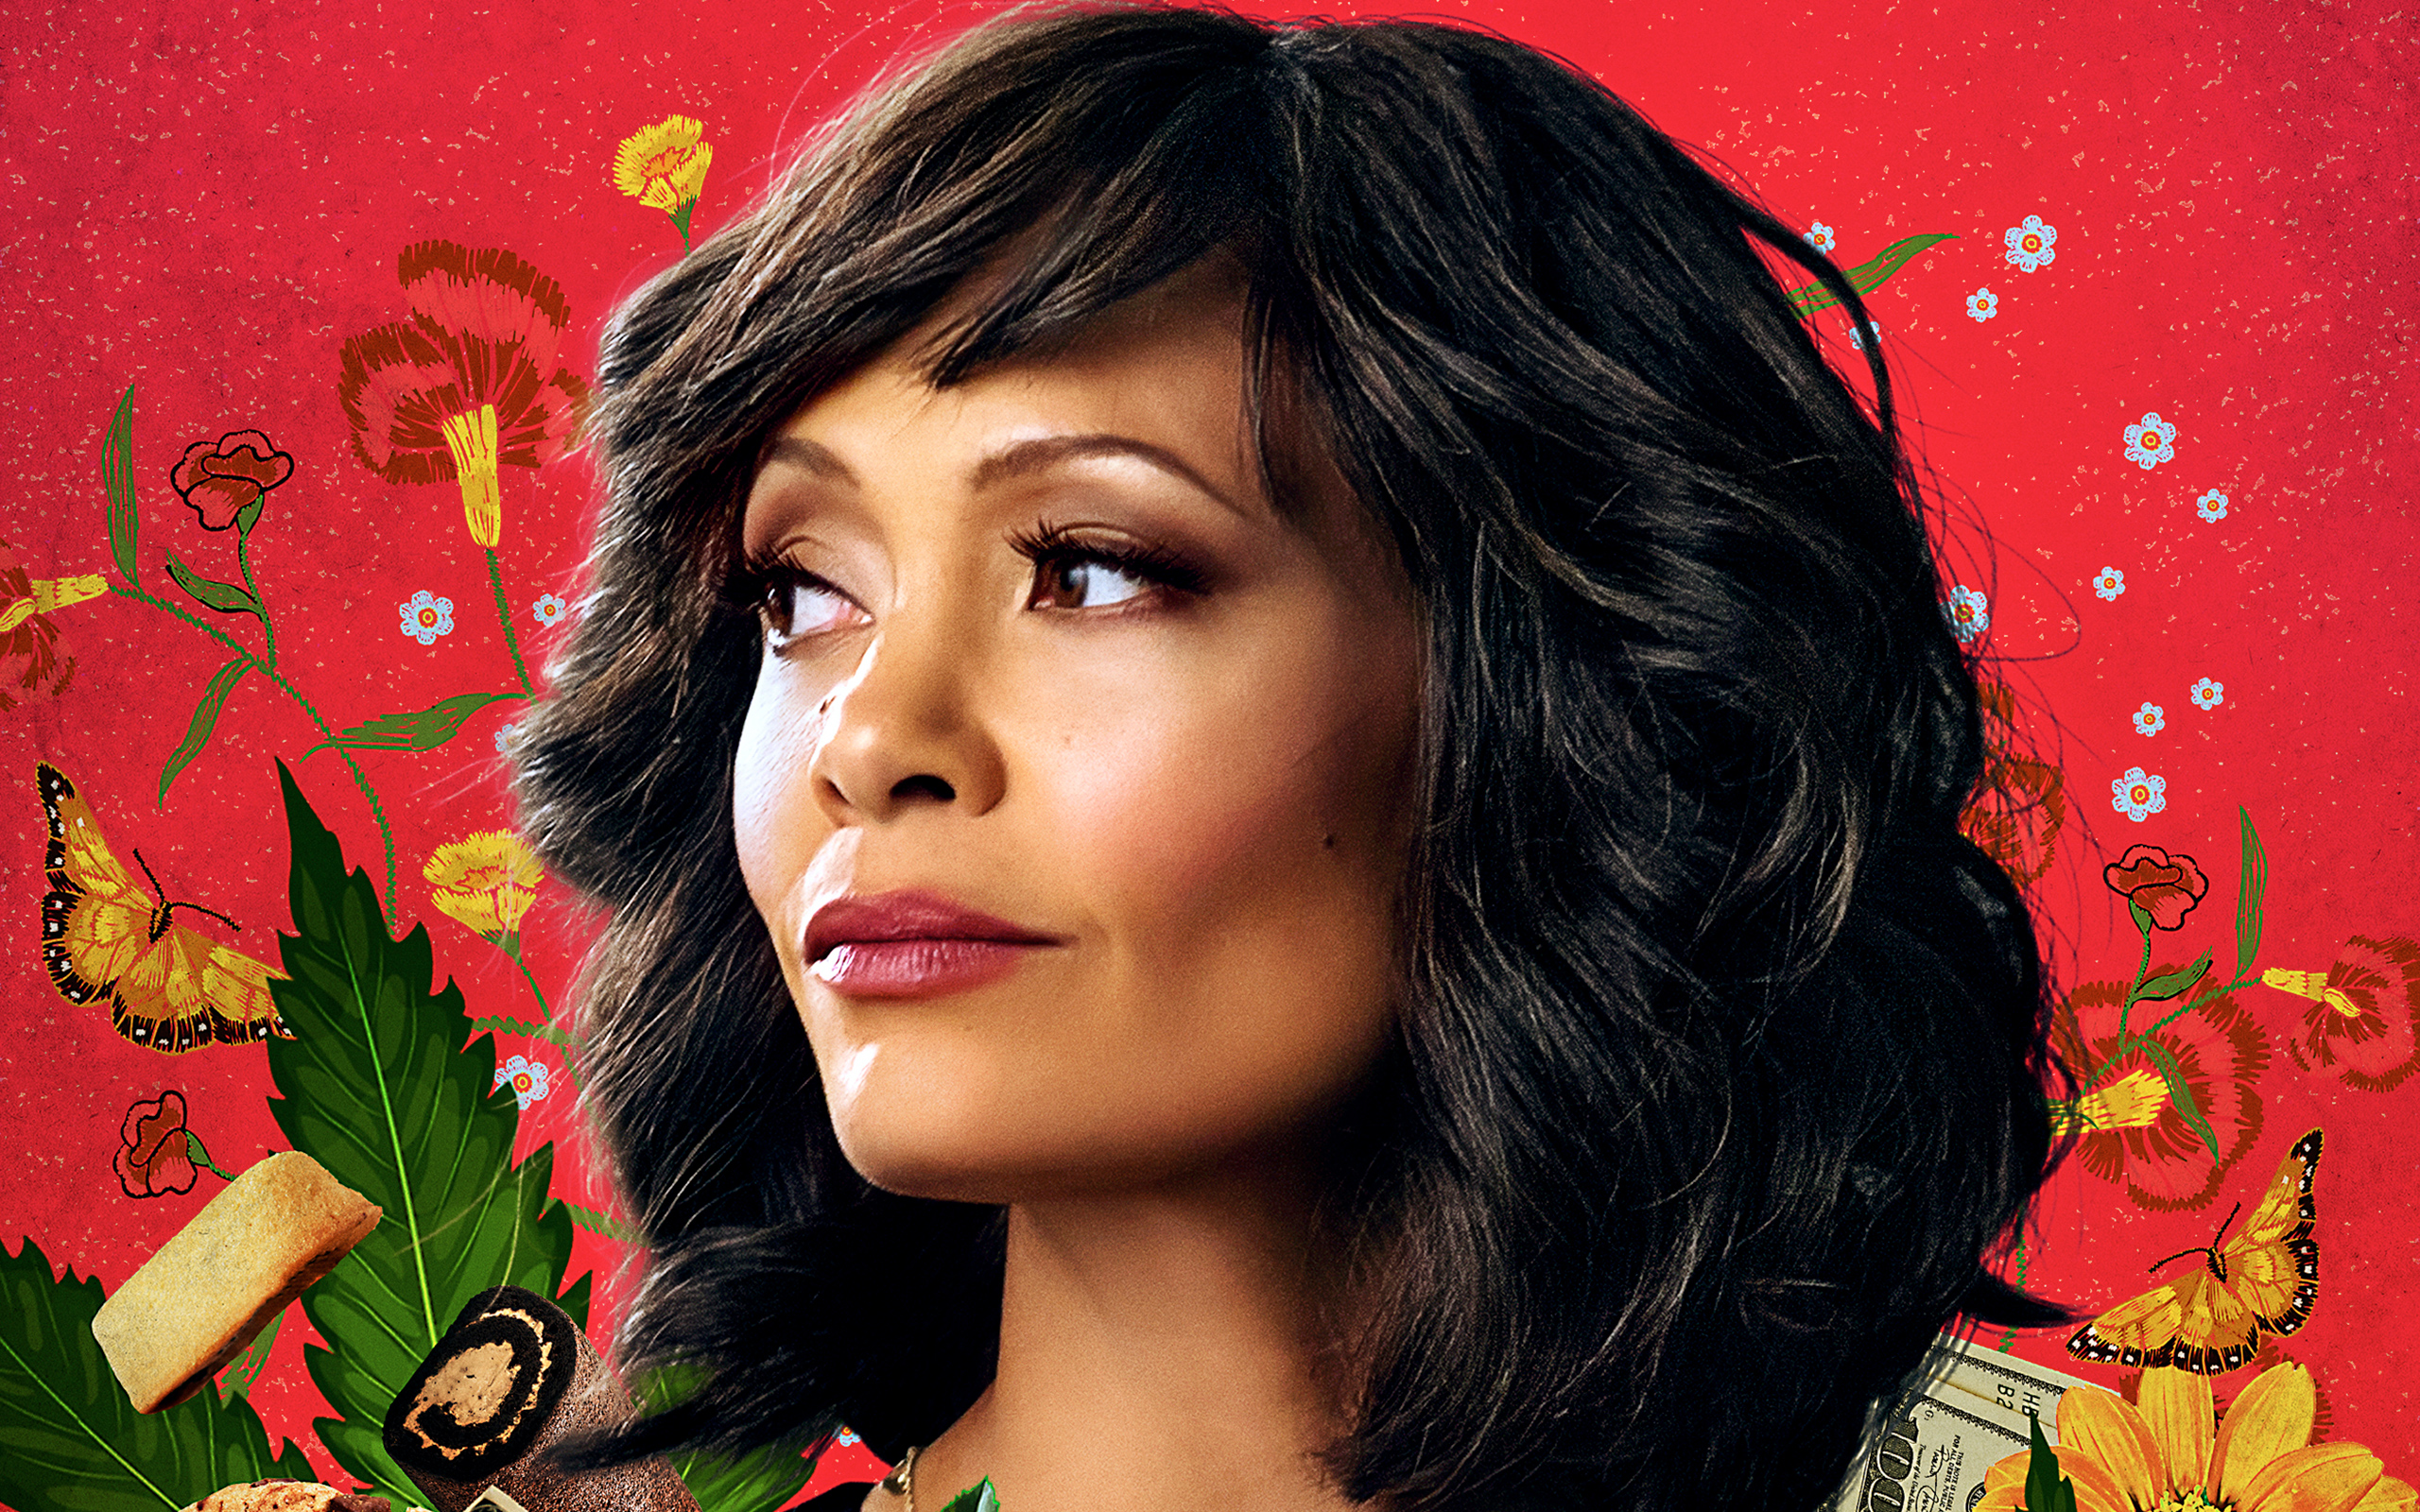 Thandie Newton in Gringo 2018196646525 - Thandie Newton in Gringo 2018 - Thandie, Newton, Gringo, Acrimony, 2018